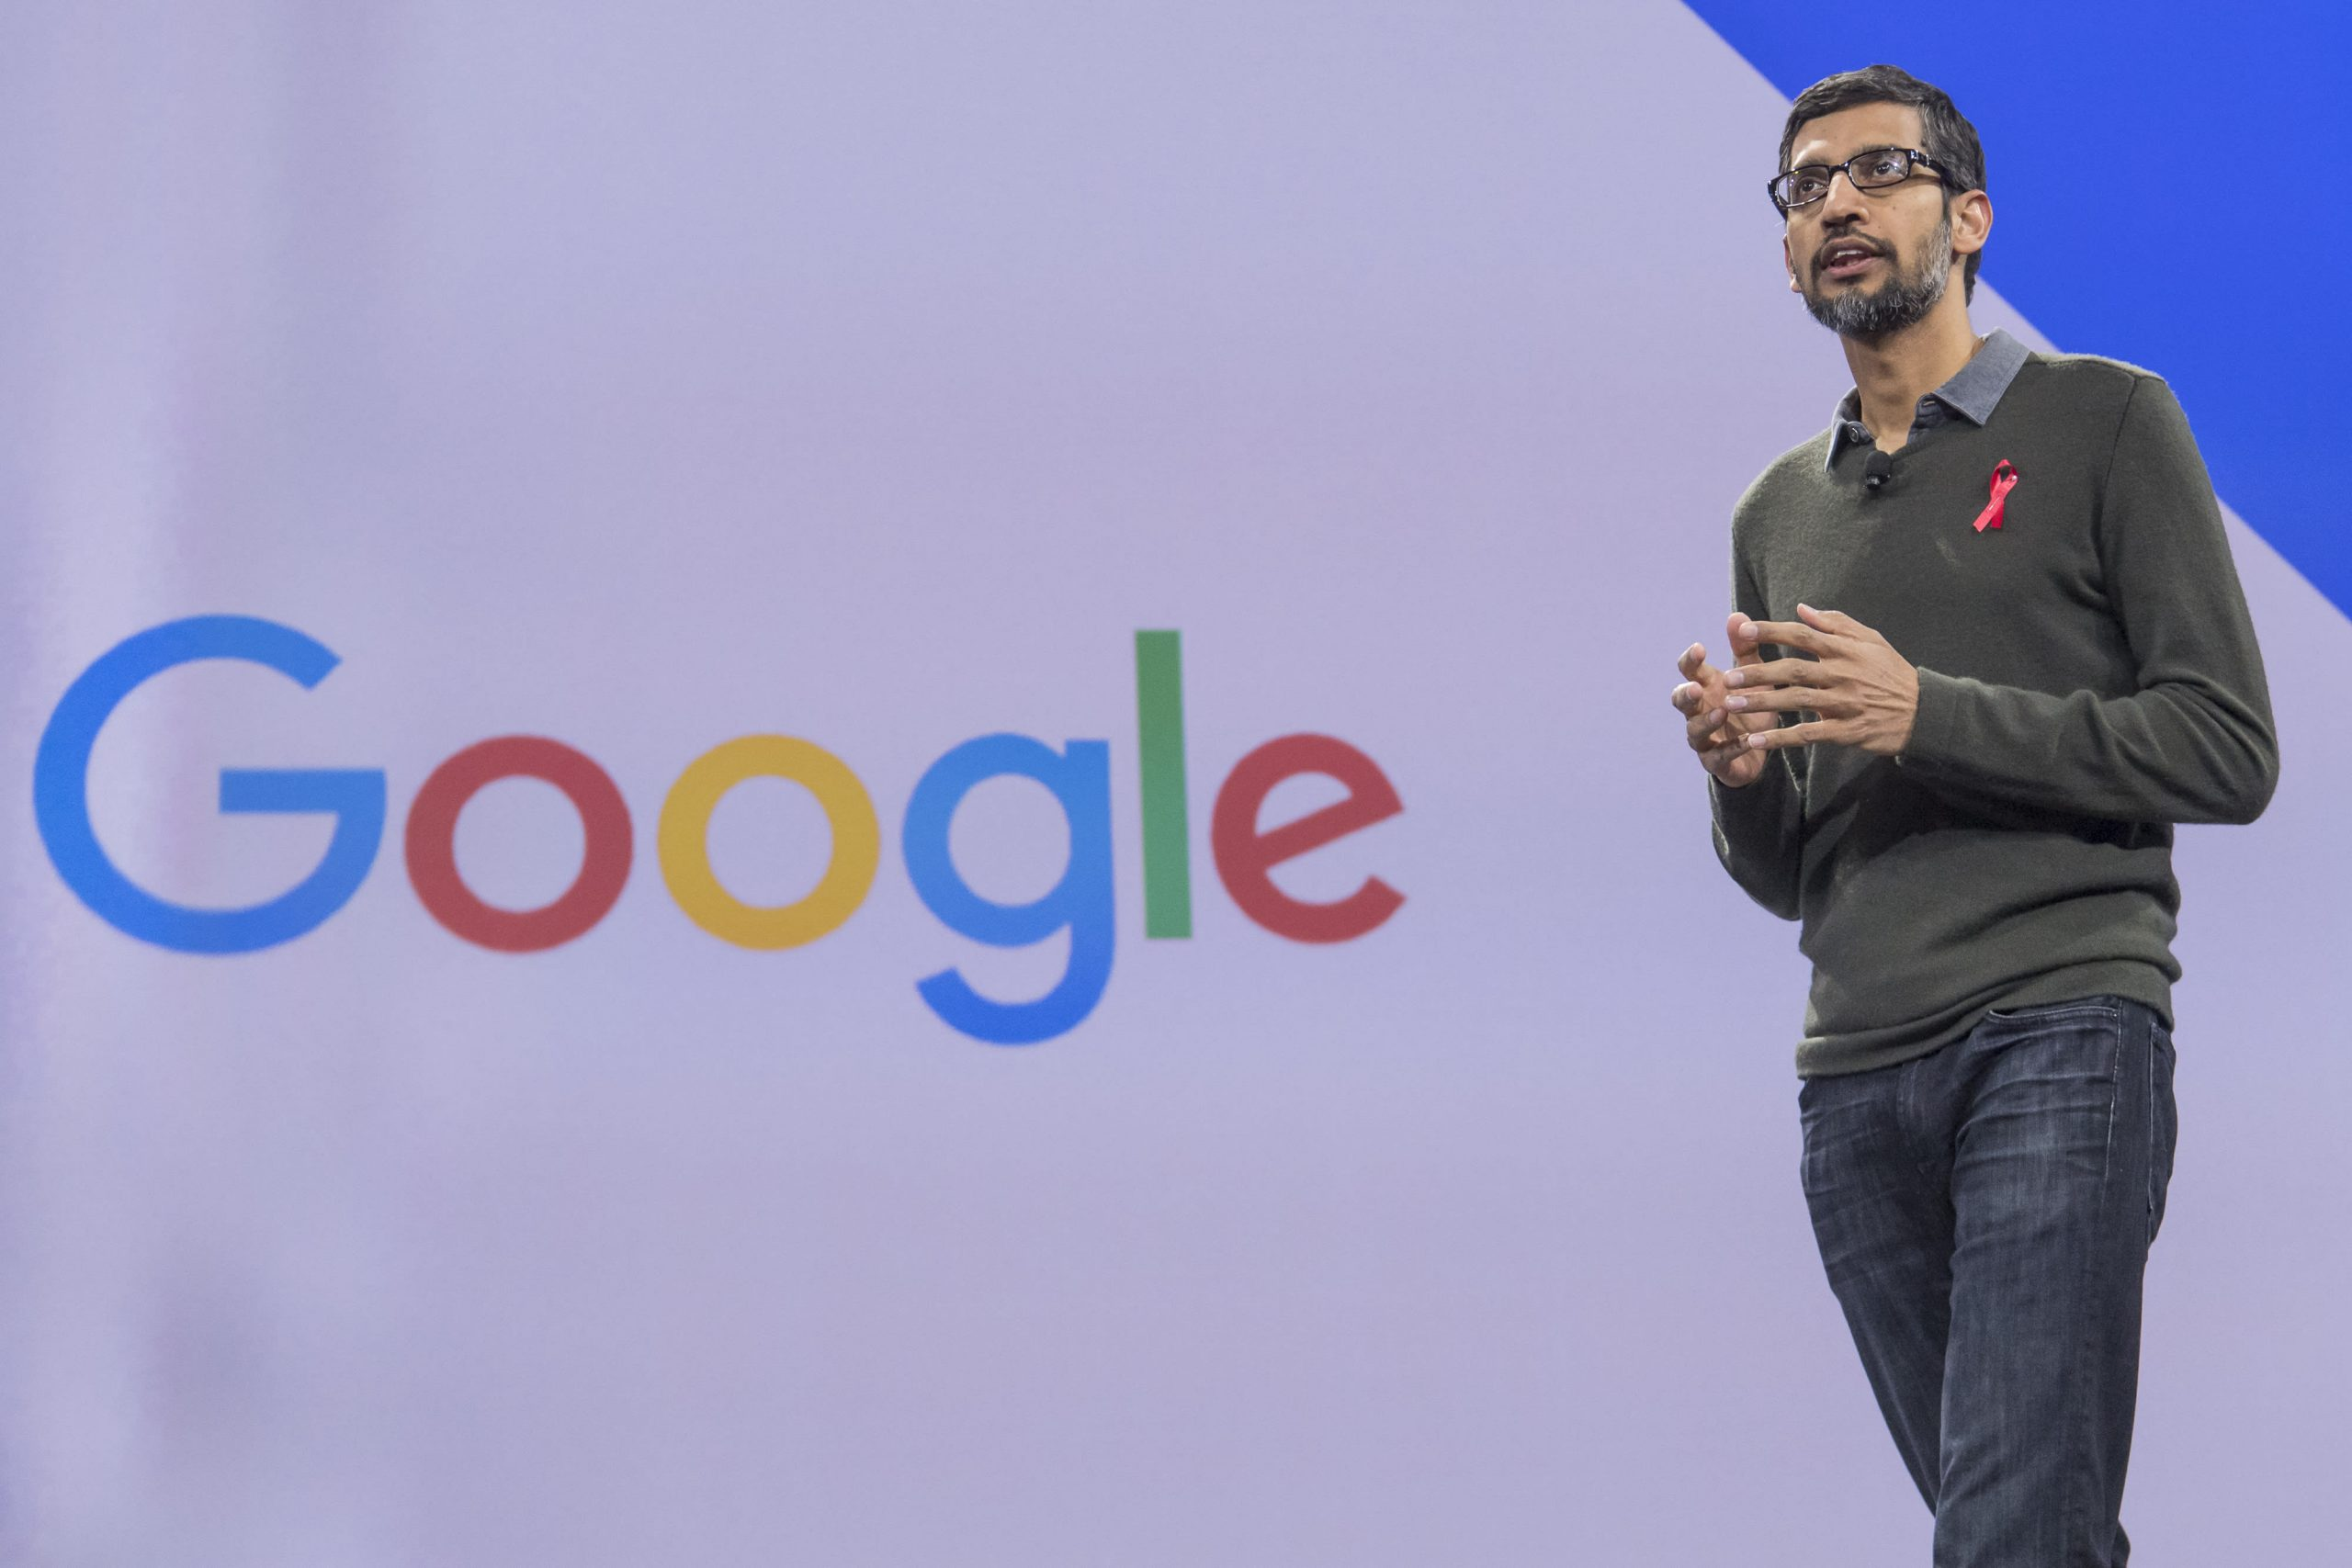 google-tells-employees-to-take-friday-off-as-a-'collective-wellbeing'-holiday-during-pandemic